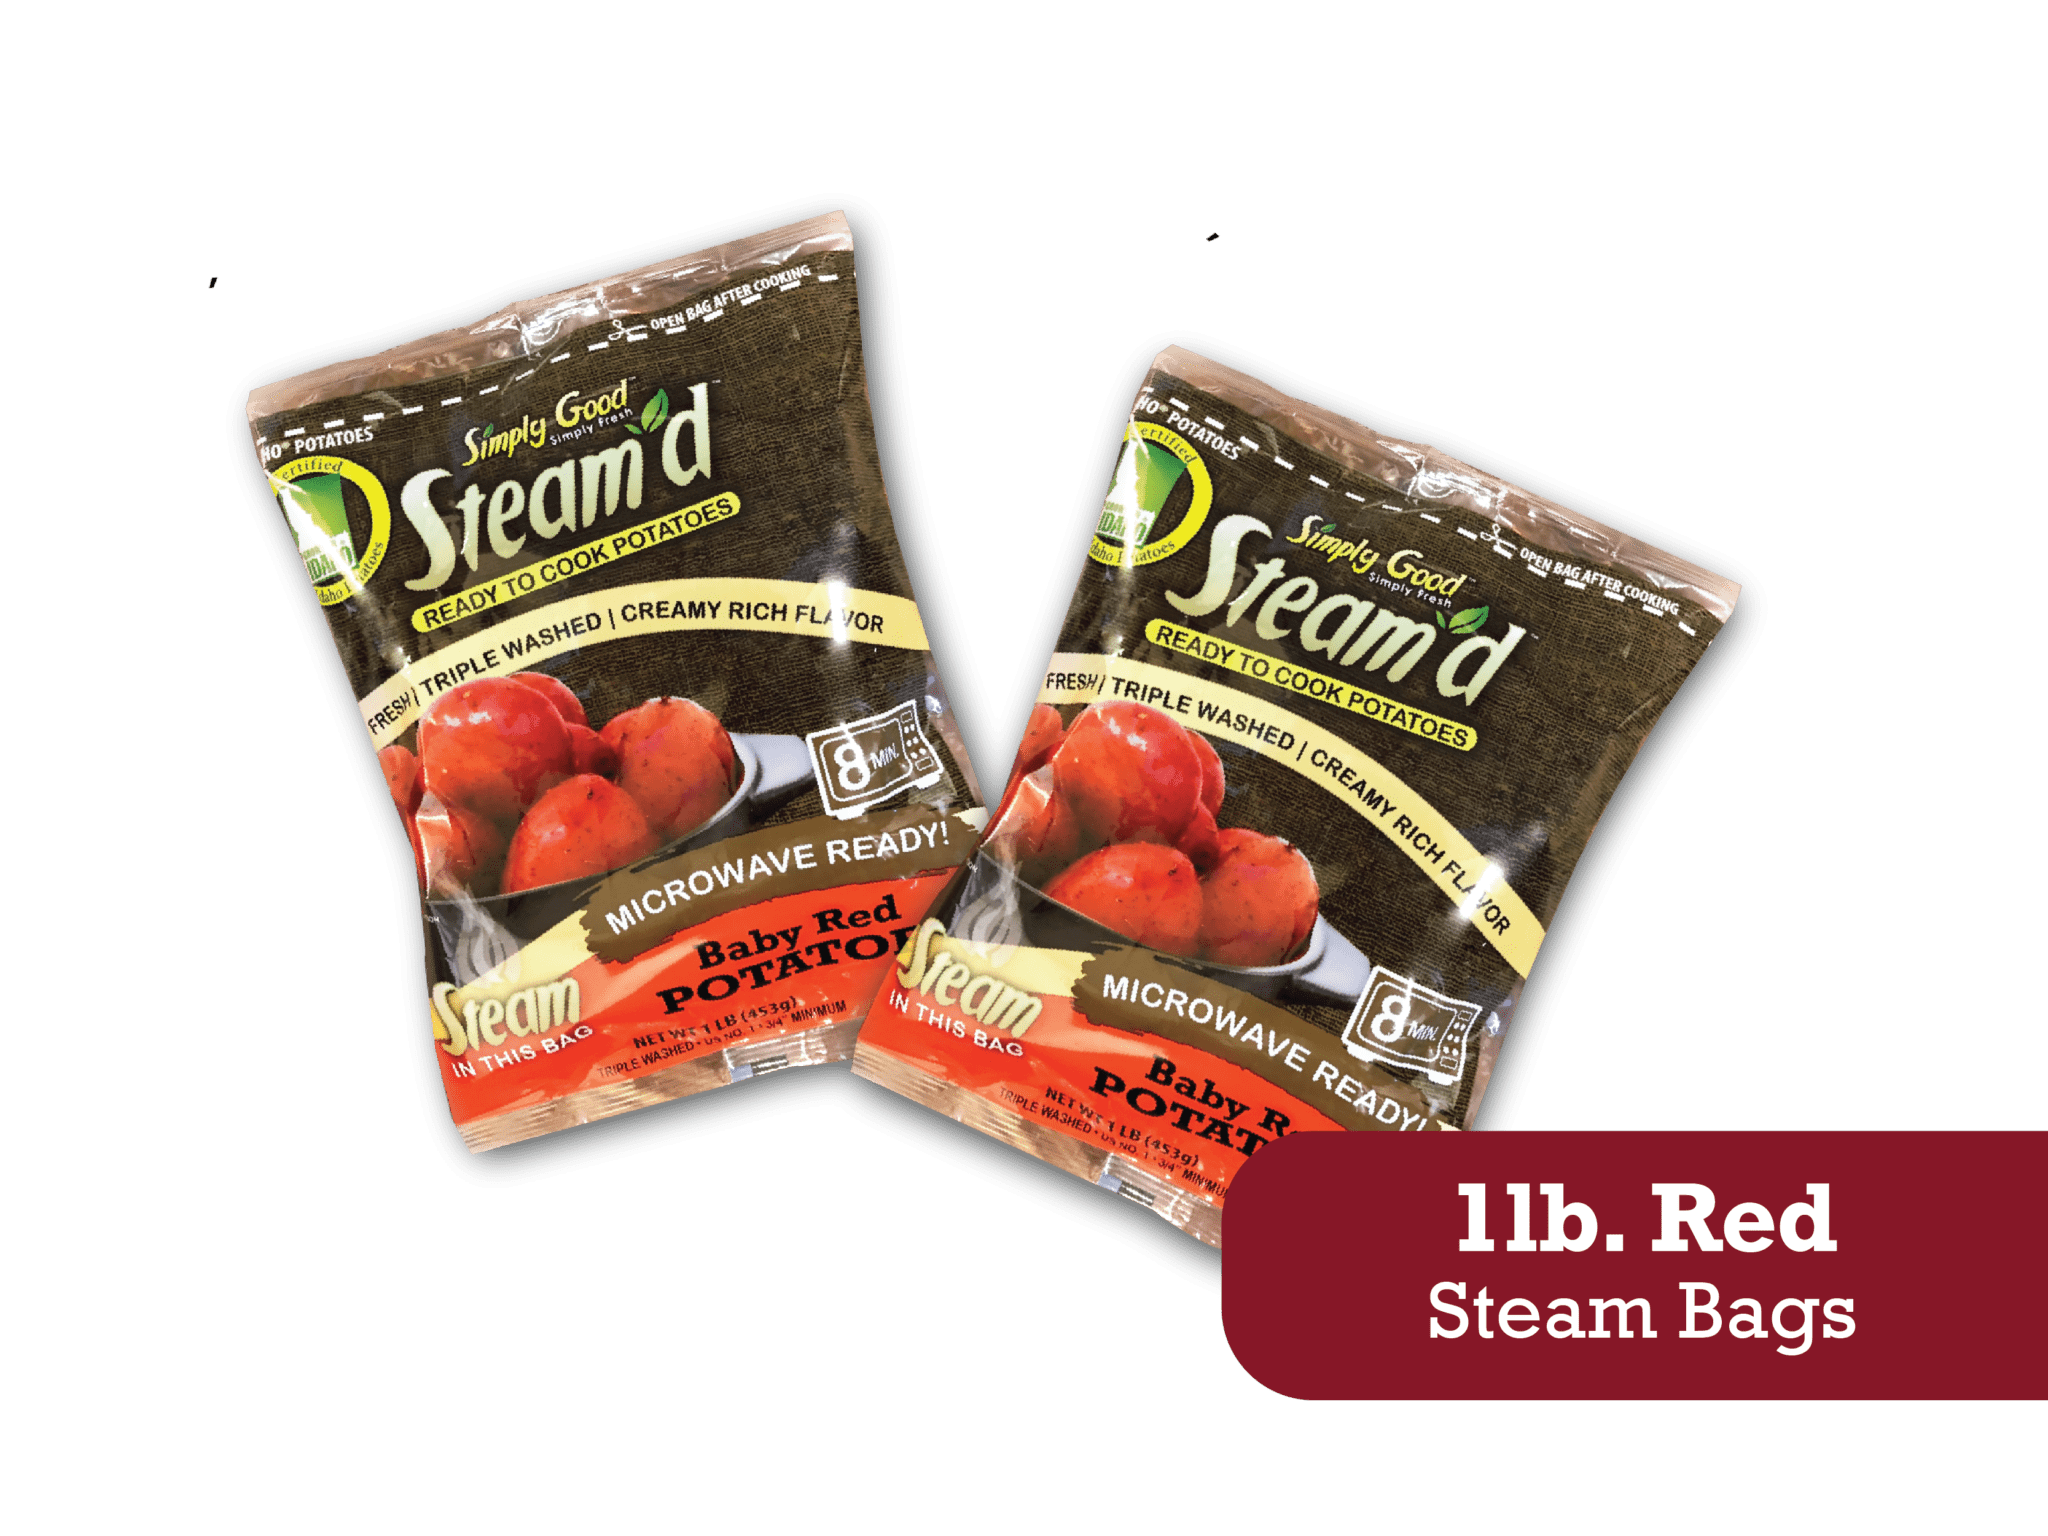 Eagle Eye Produce Steam'd 1 lb Red Steam Bags